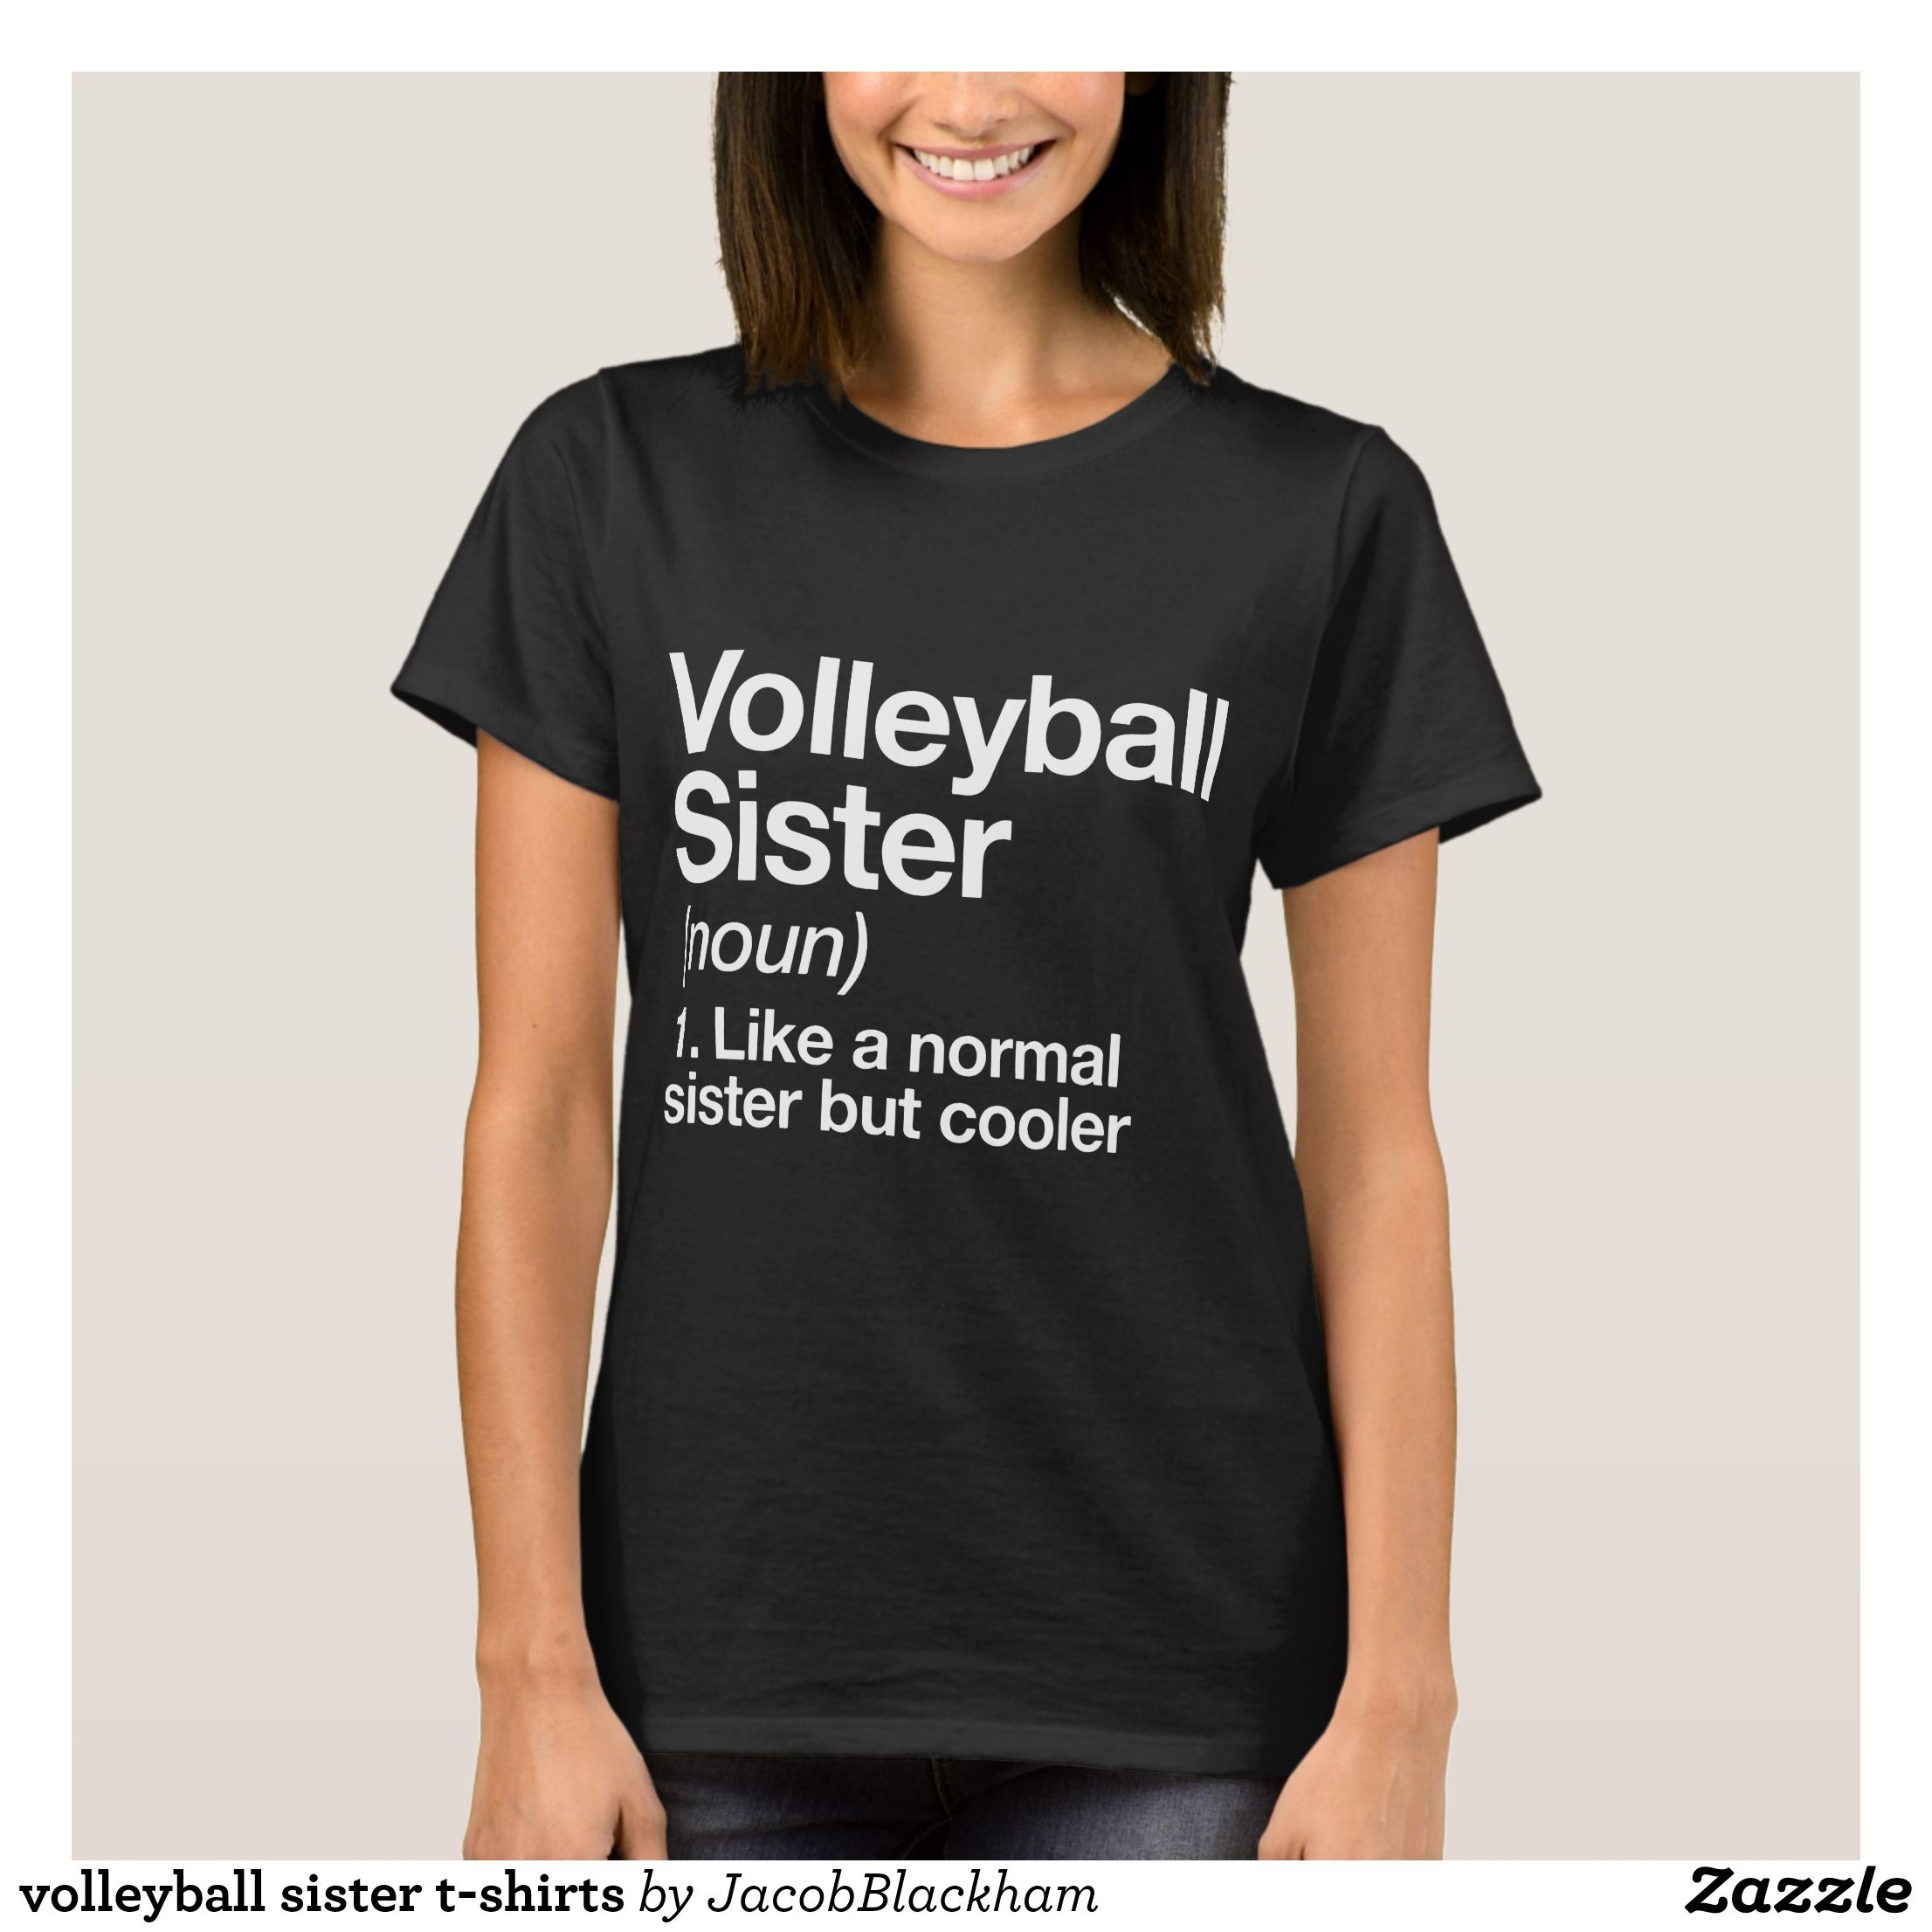 Volleyball Sister T Shirts Fashionable Women S Shirts By Creative Talented Graphic Designers Shirts Tshir Tshirt Designs T Shirts For Women Shirt Designs